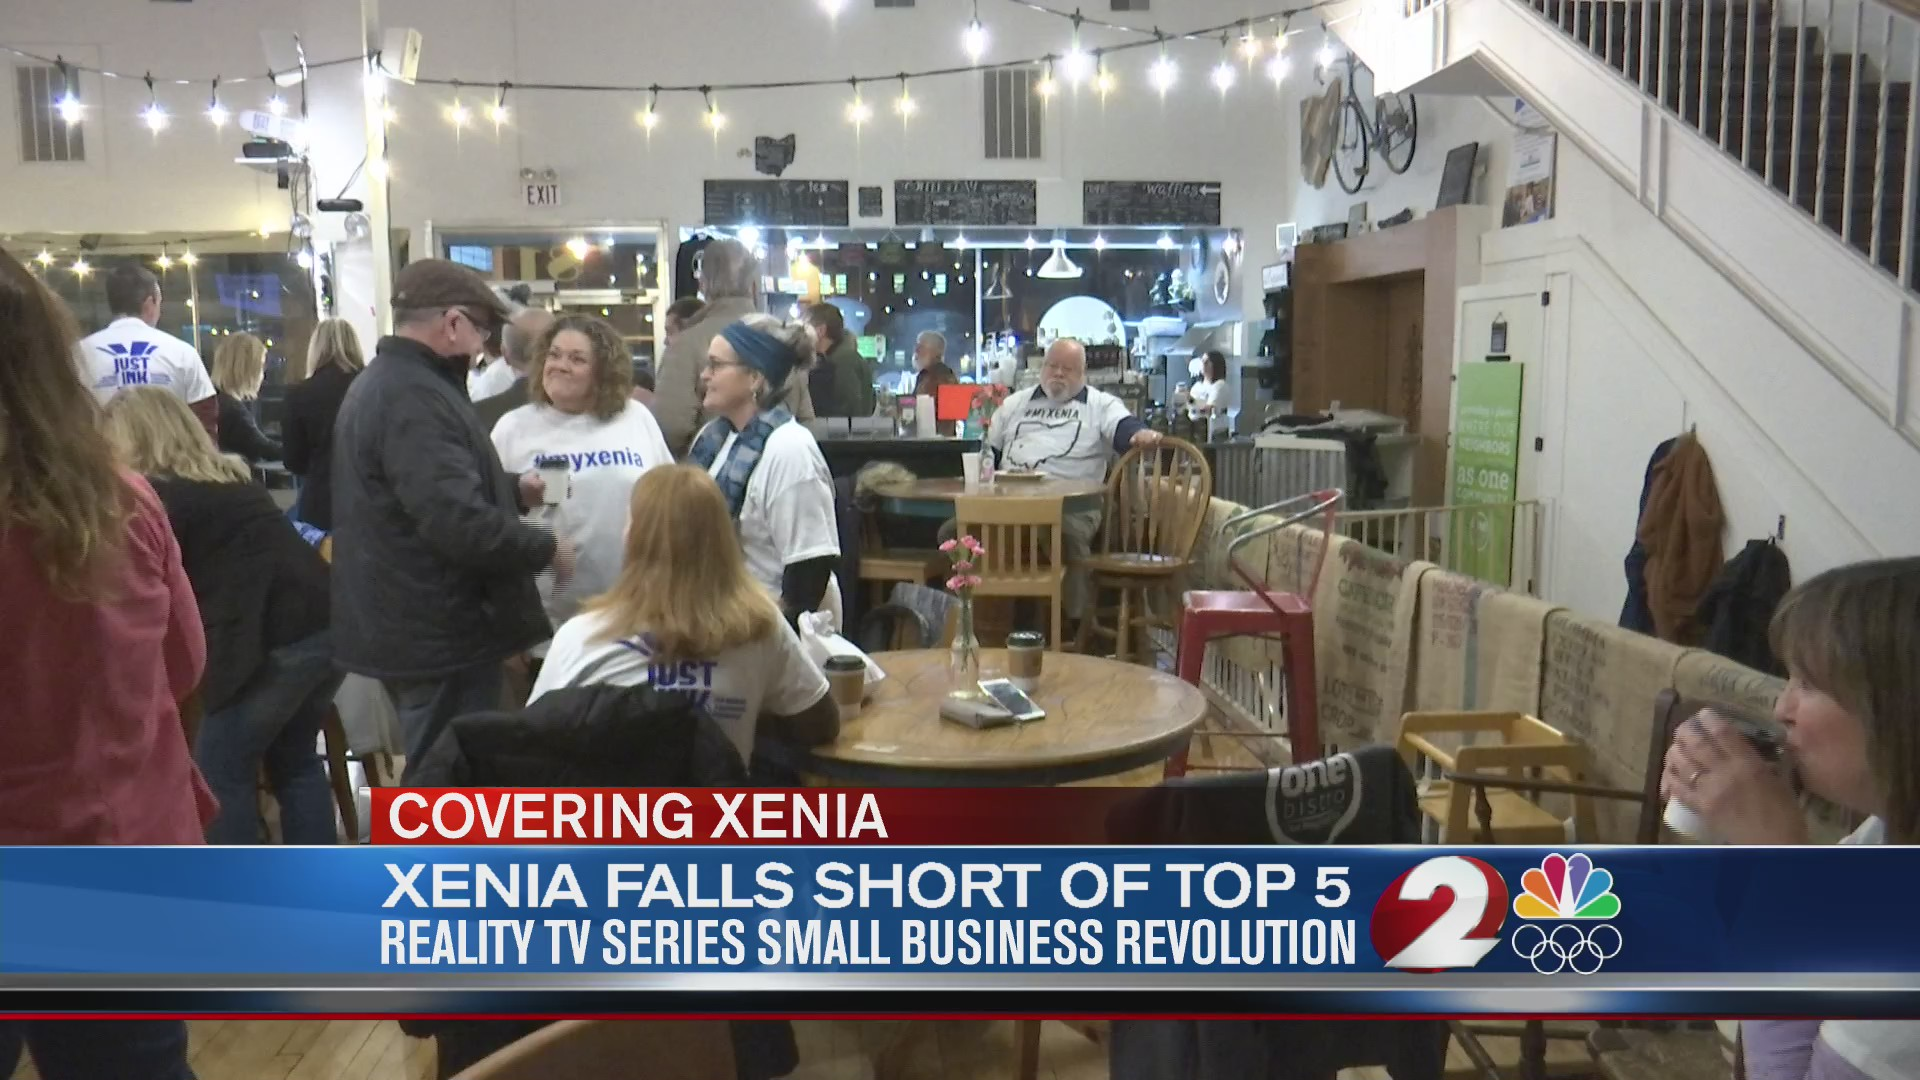 Xenia falls short of reality show Top 5